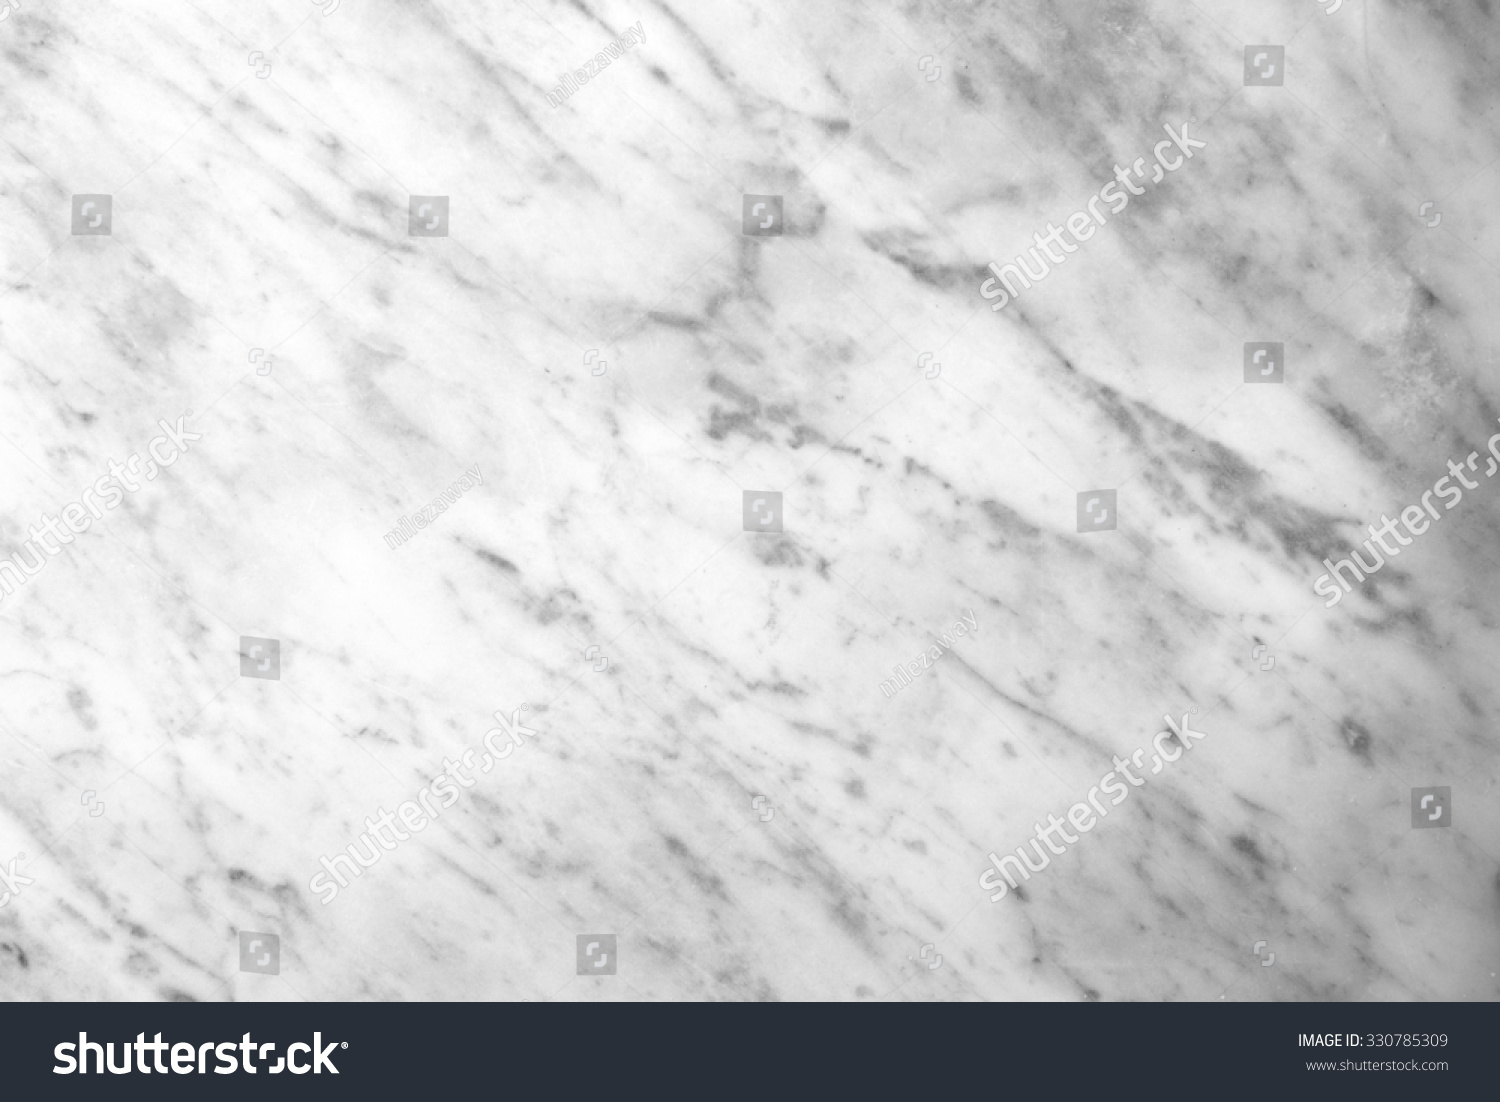 Smooth shaped white stones surface texture background stock photo - White Marble Texture Solid Raw Surface Of Marble Background For Design